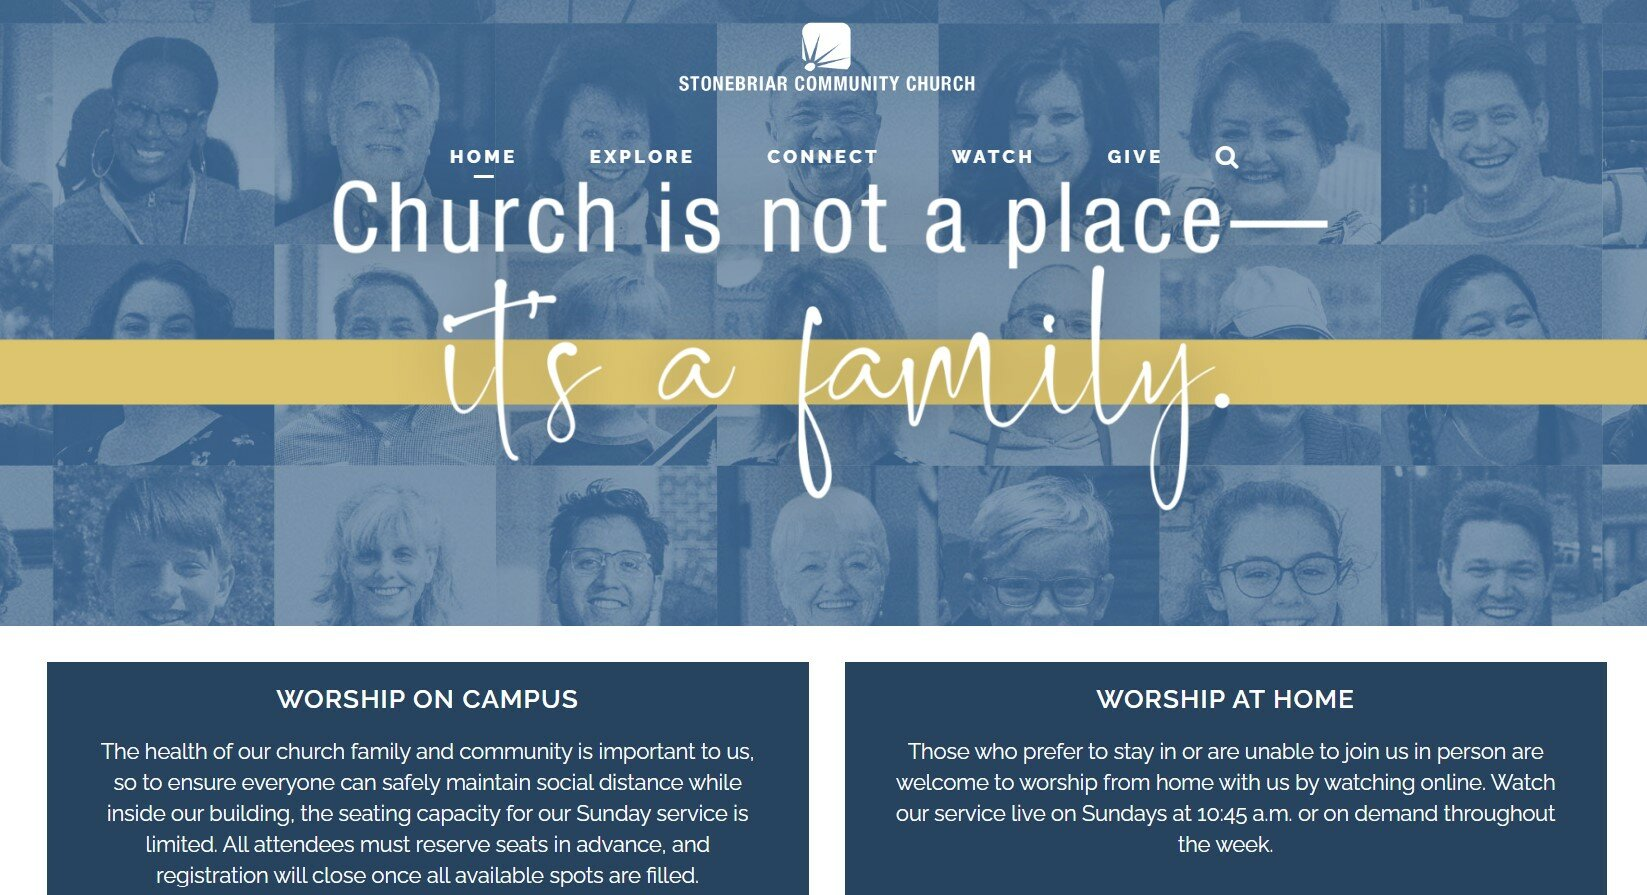 Stonebriar Community Church has one of our favorite church websites.